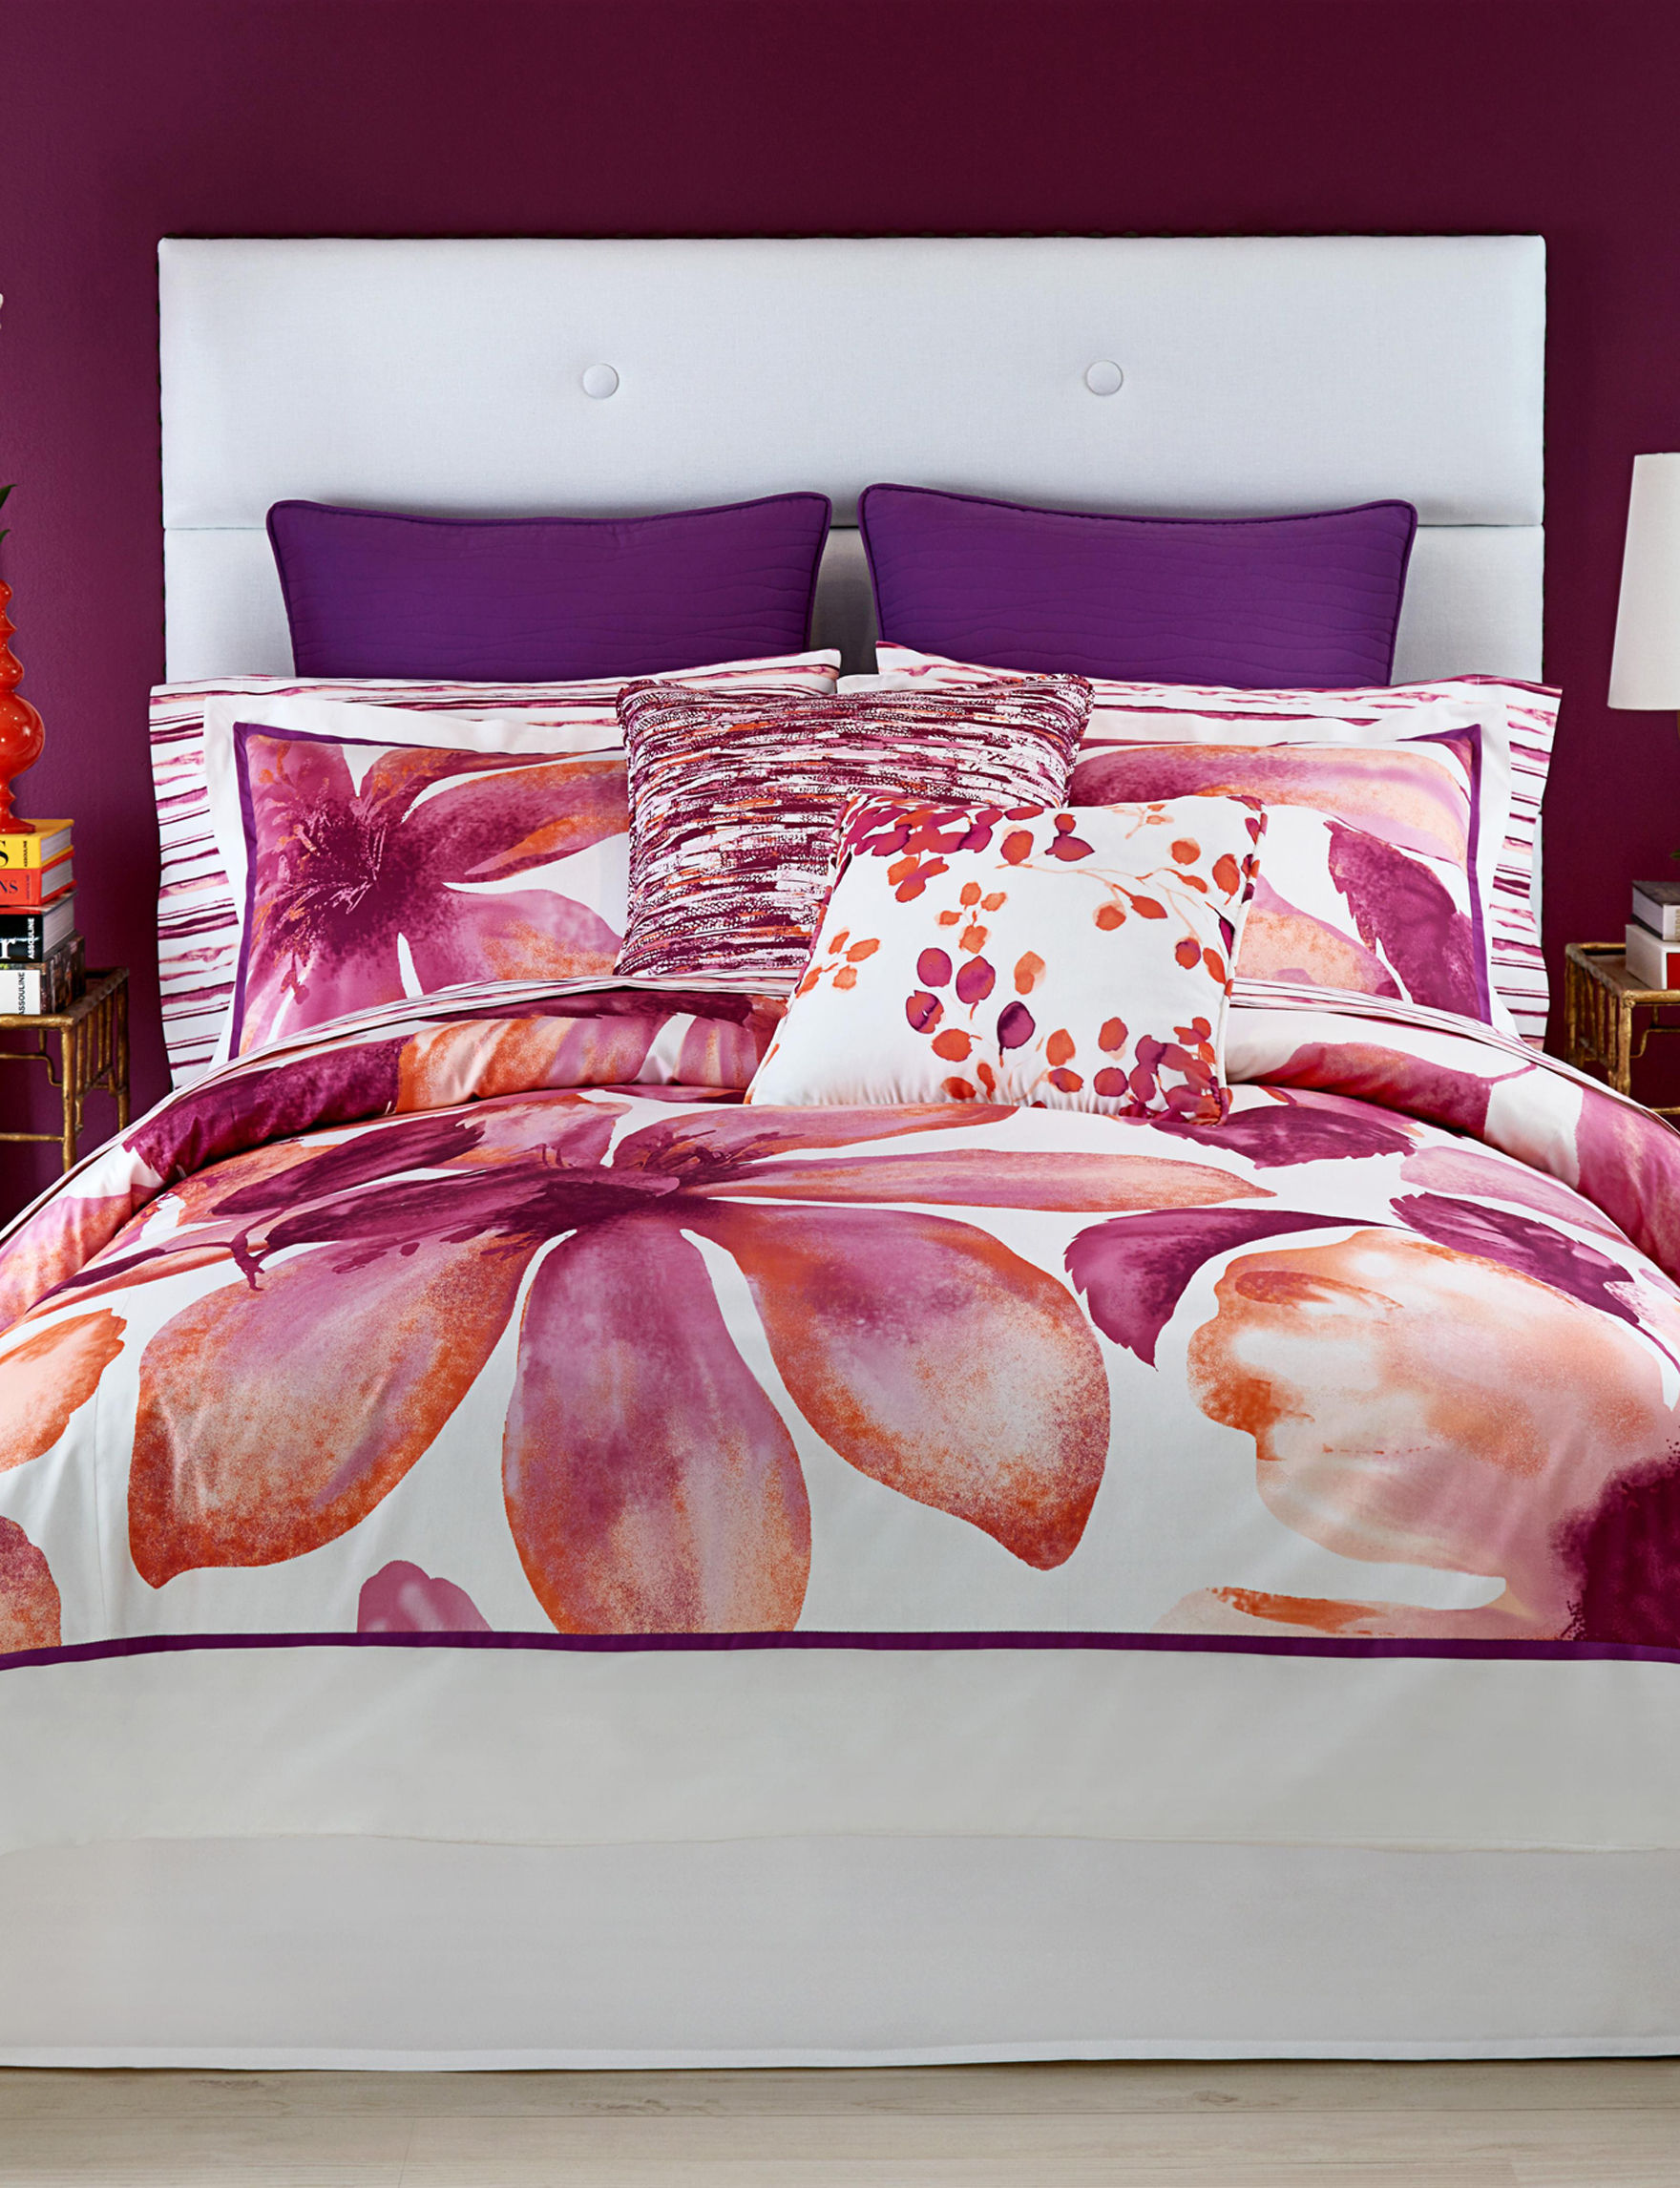 Christian Siriano New York Multi Comforters & Comforter Sets Sheets & Pillowcases